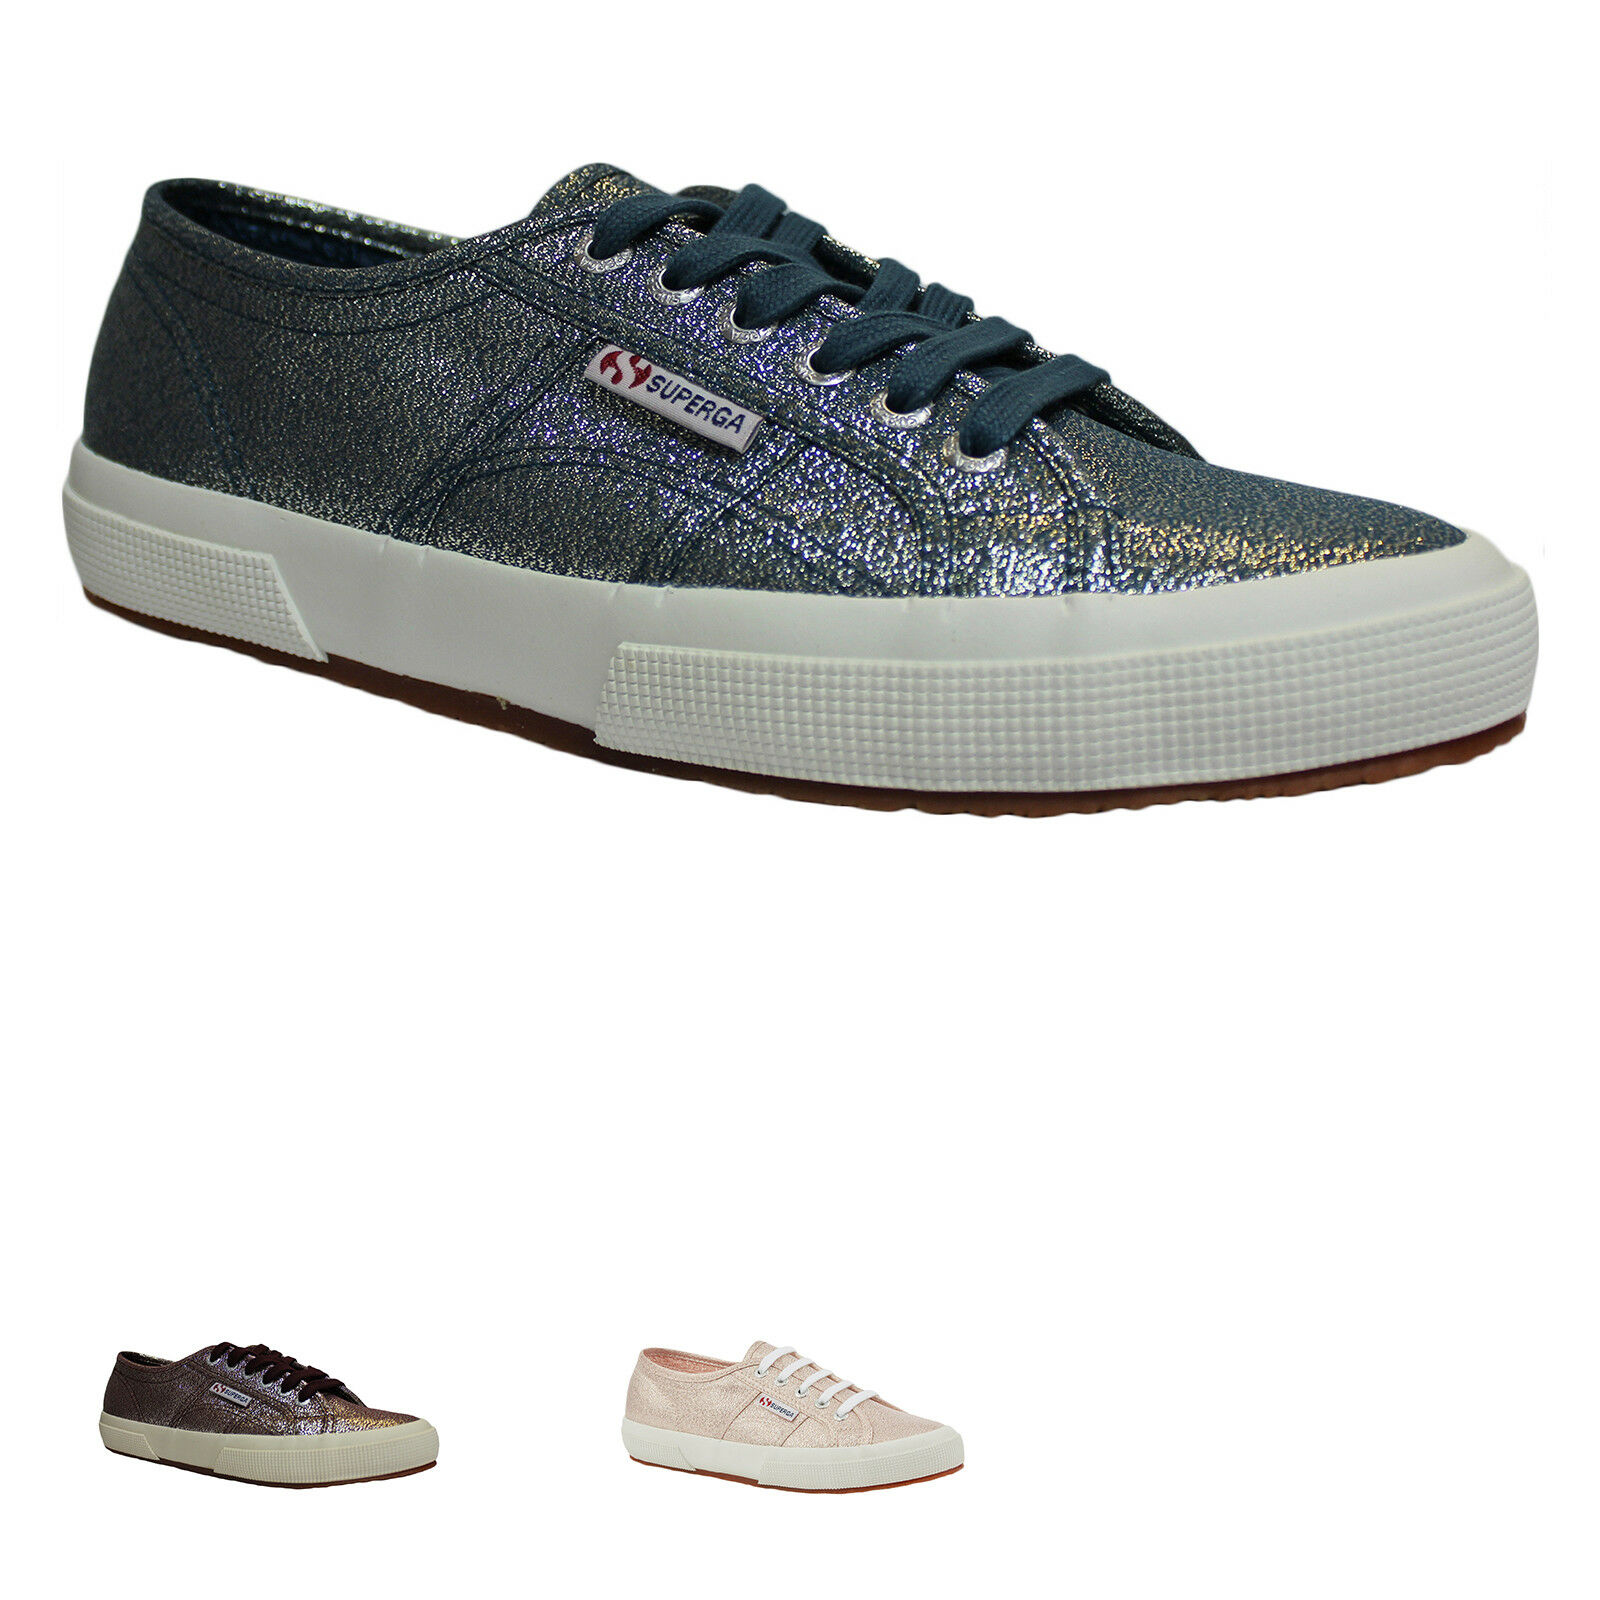 SUPERGA 2750 LAMEW Canvas damen Mens Casual Low-Top Unisex Trainer